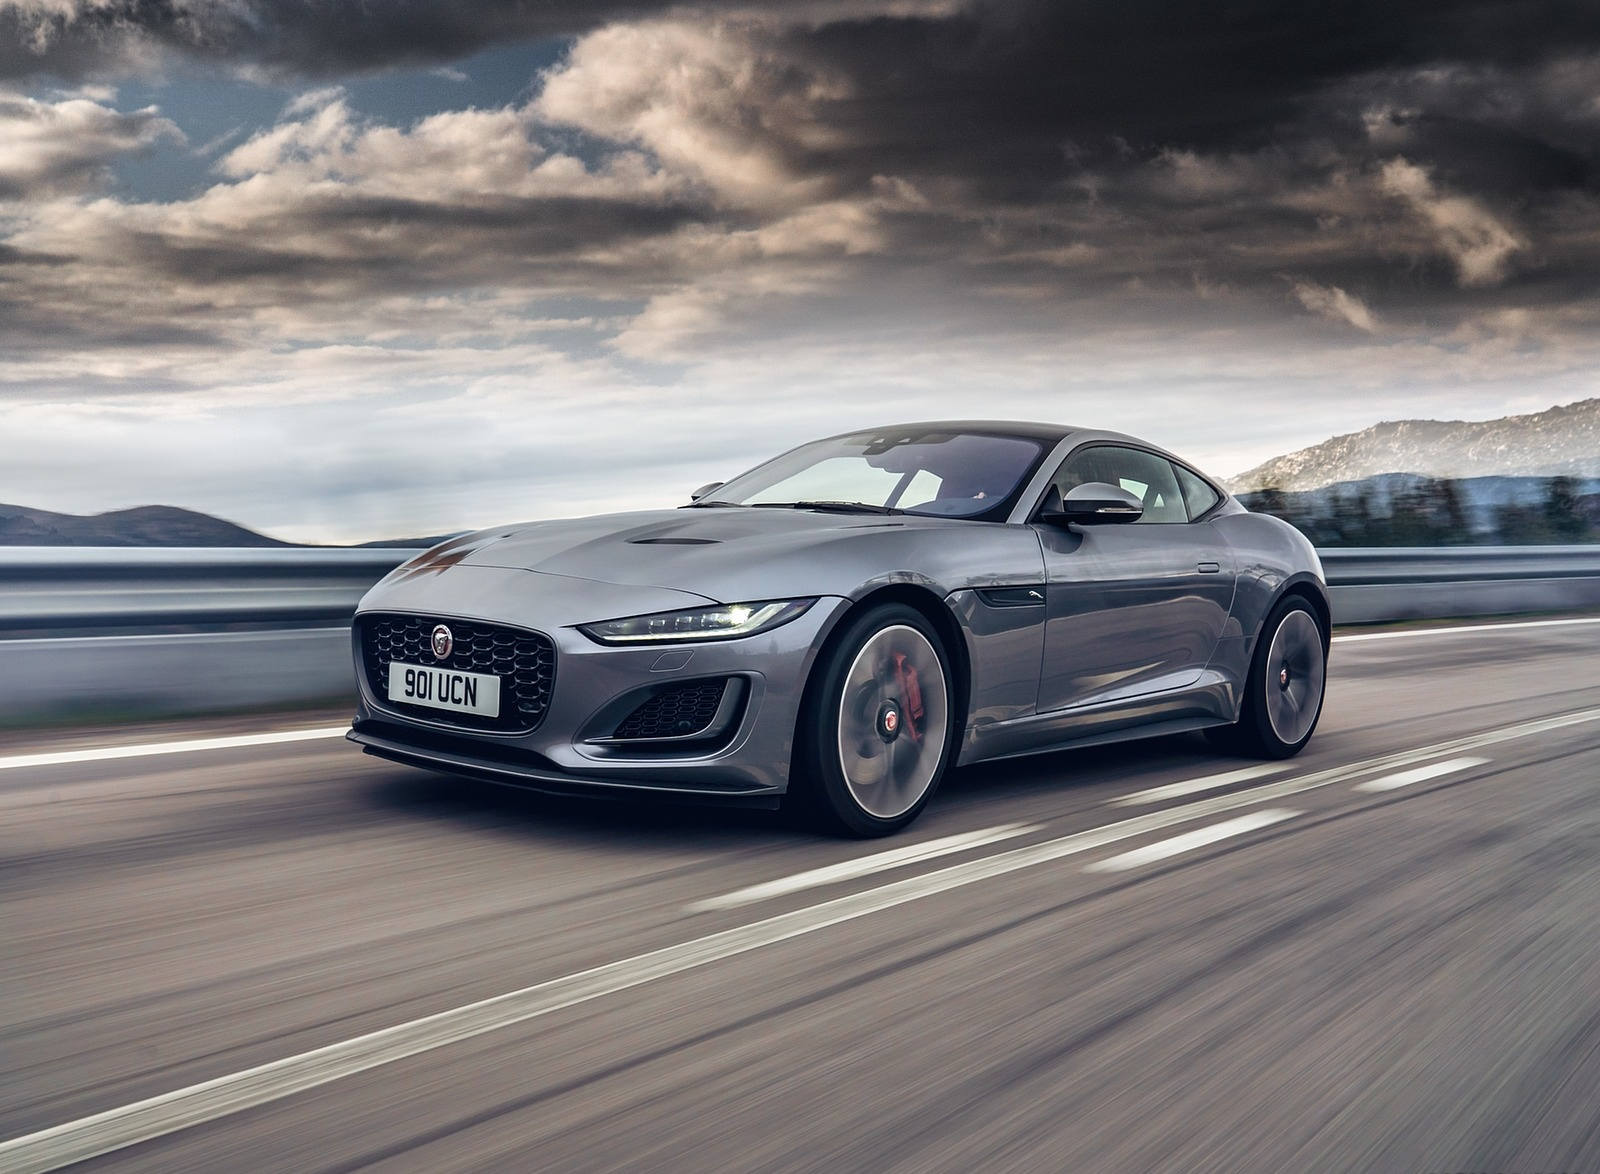 2021 Jaguar F-TYPE P300 Coupe RWD (Color: Eiger Grey) Front Three-Quarter Wallpapers (3)